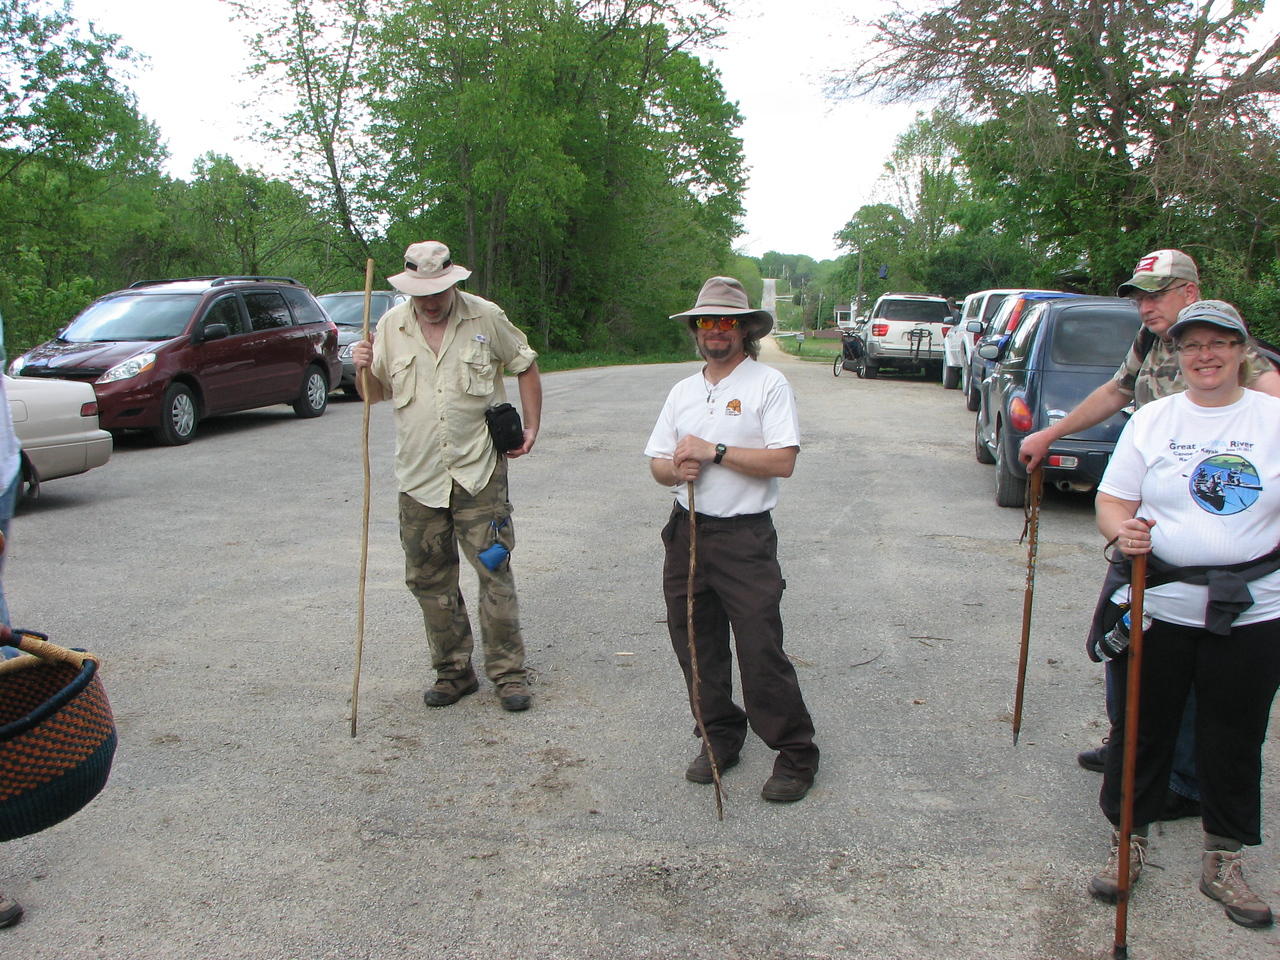 A few of the participants at the Wickiup foray.